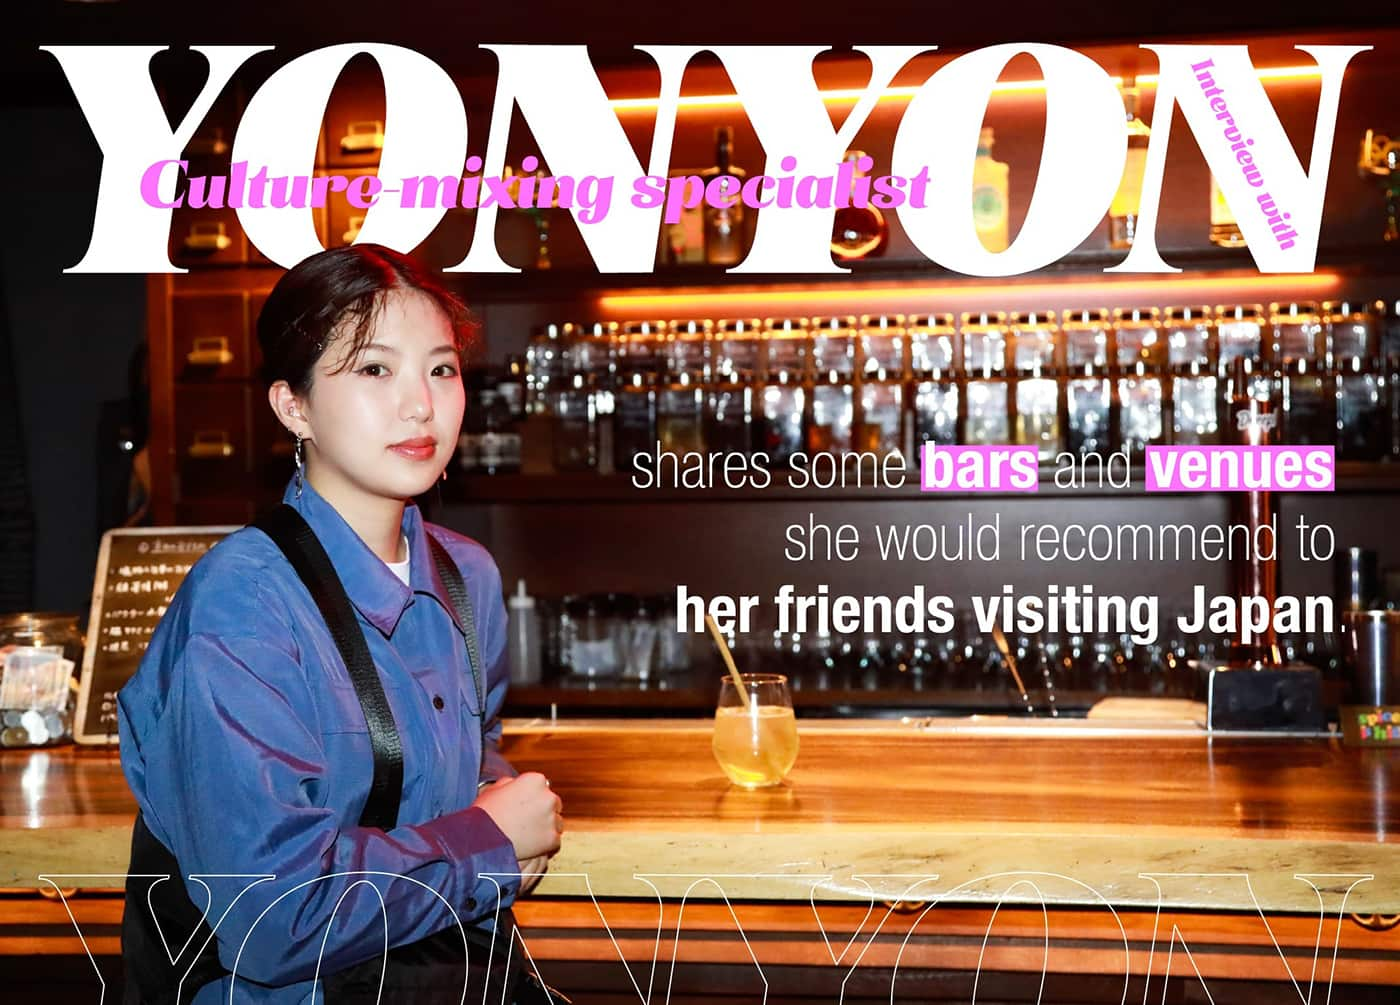 Recommended places by YonYon, a DJ working borderless